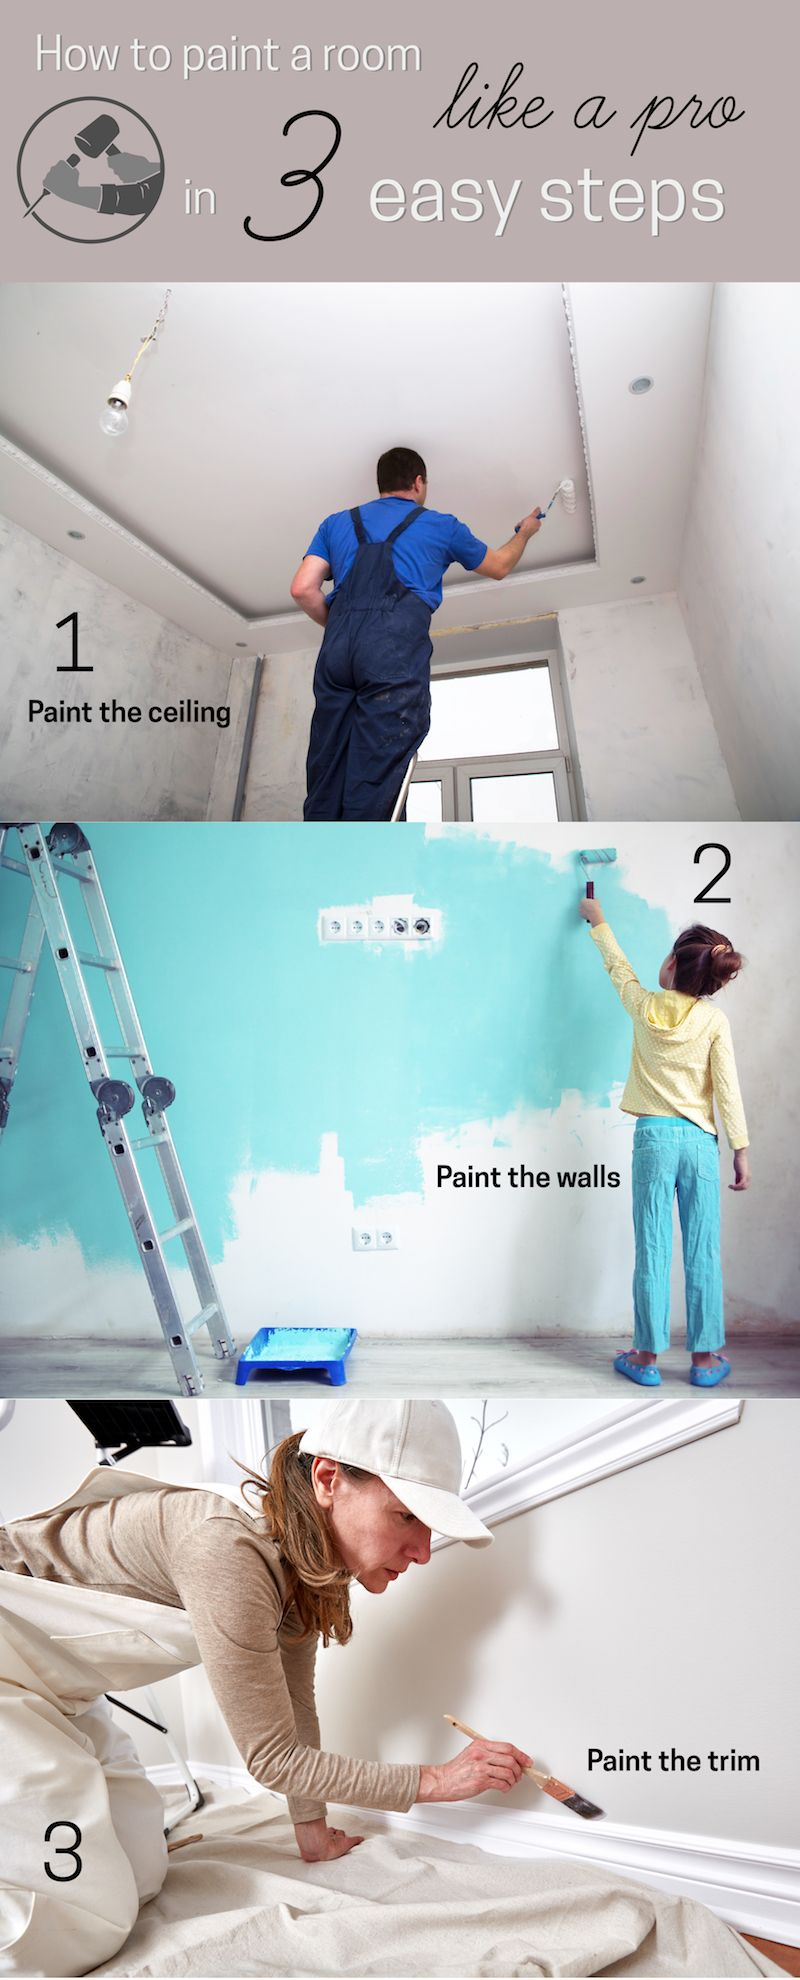 How To Paint A Room Like Pro Steps Painting